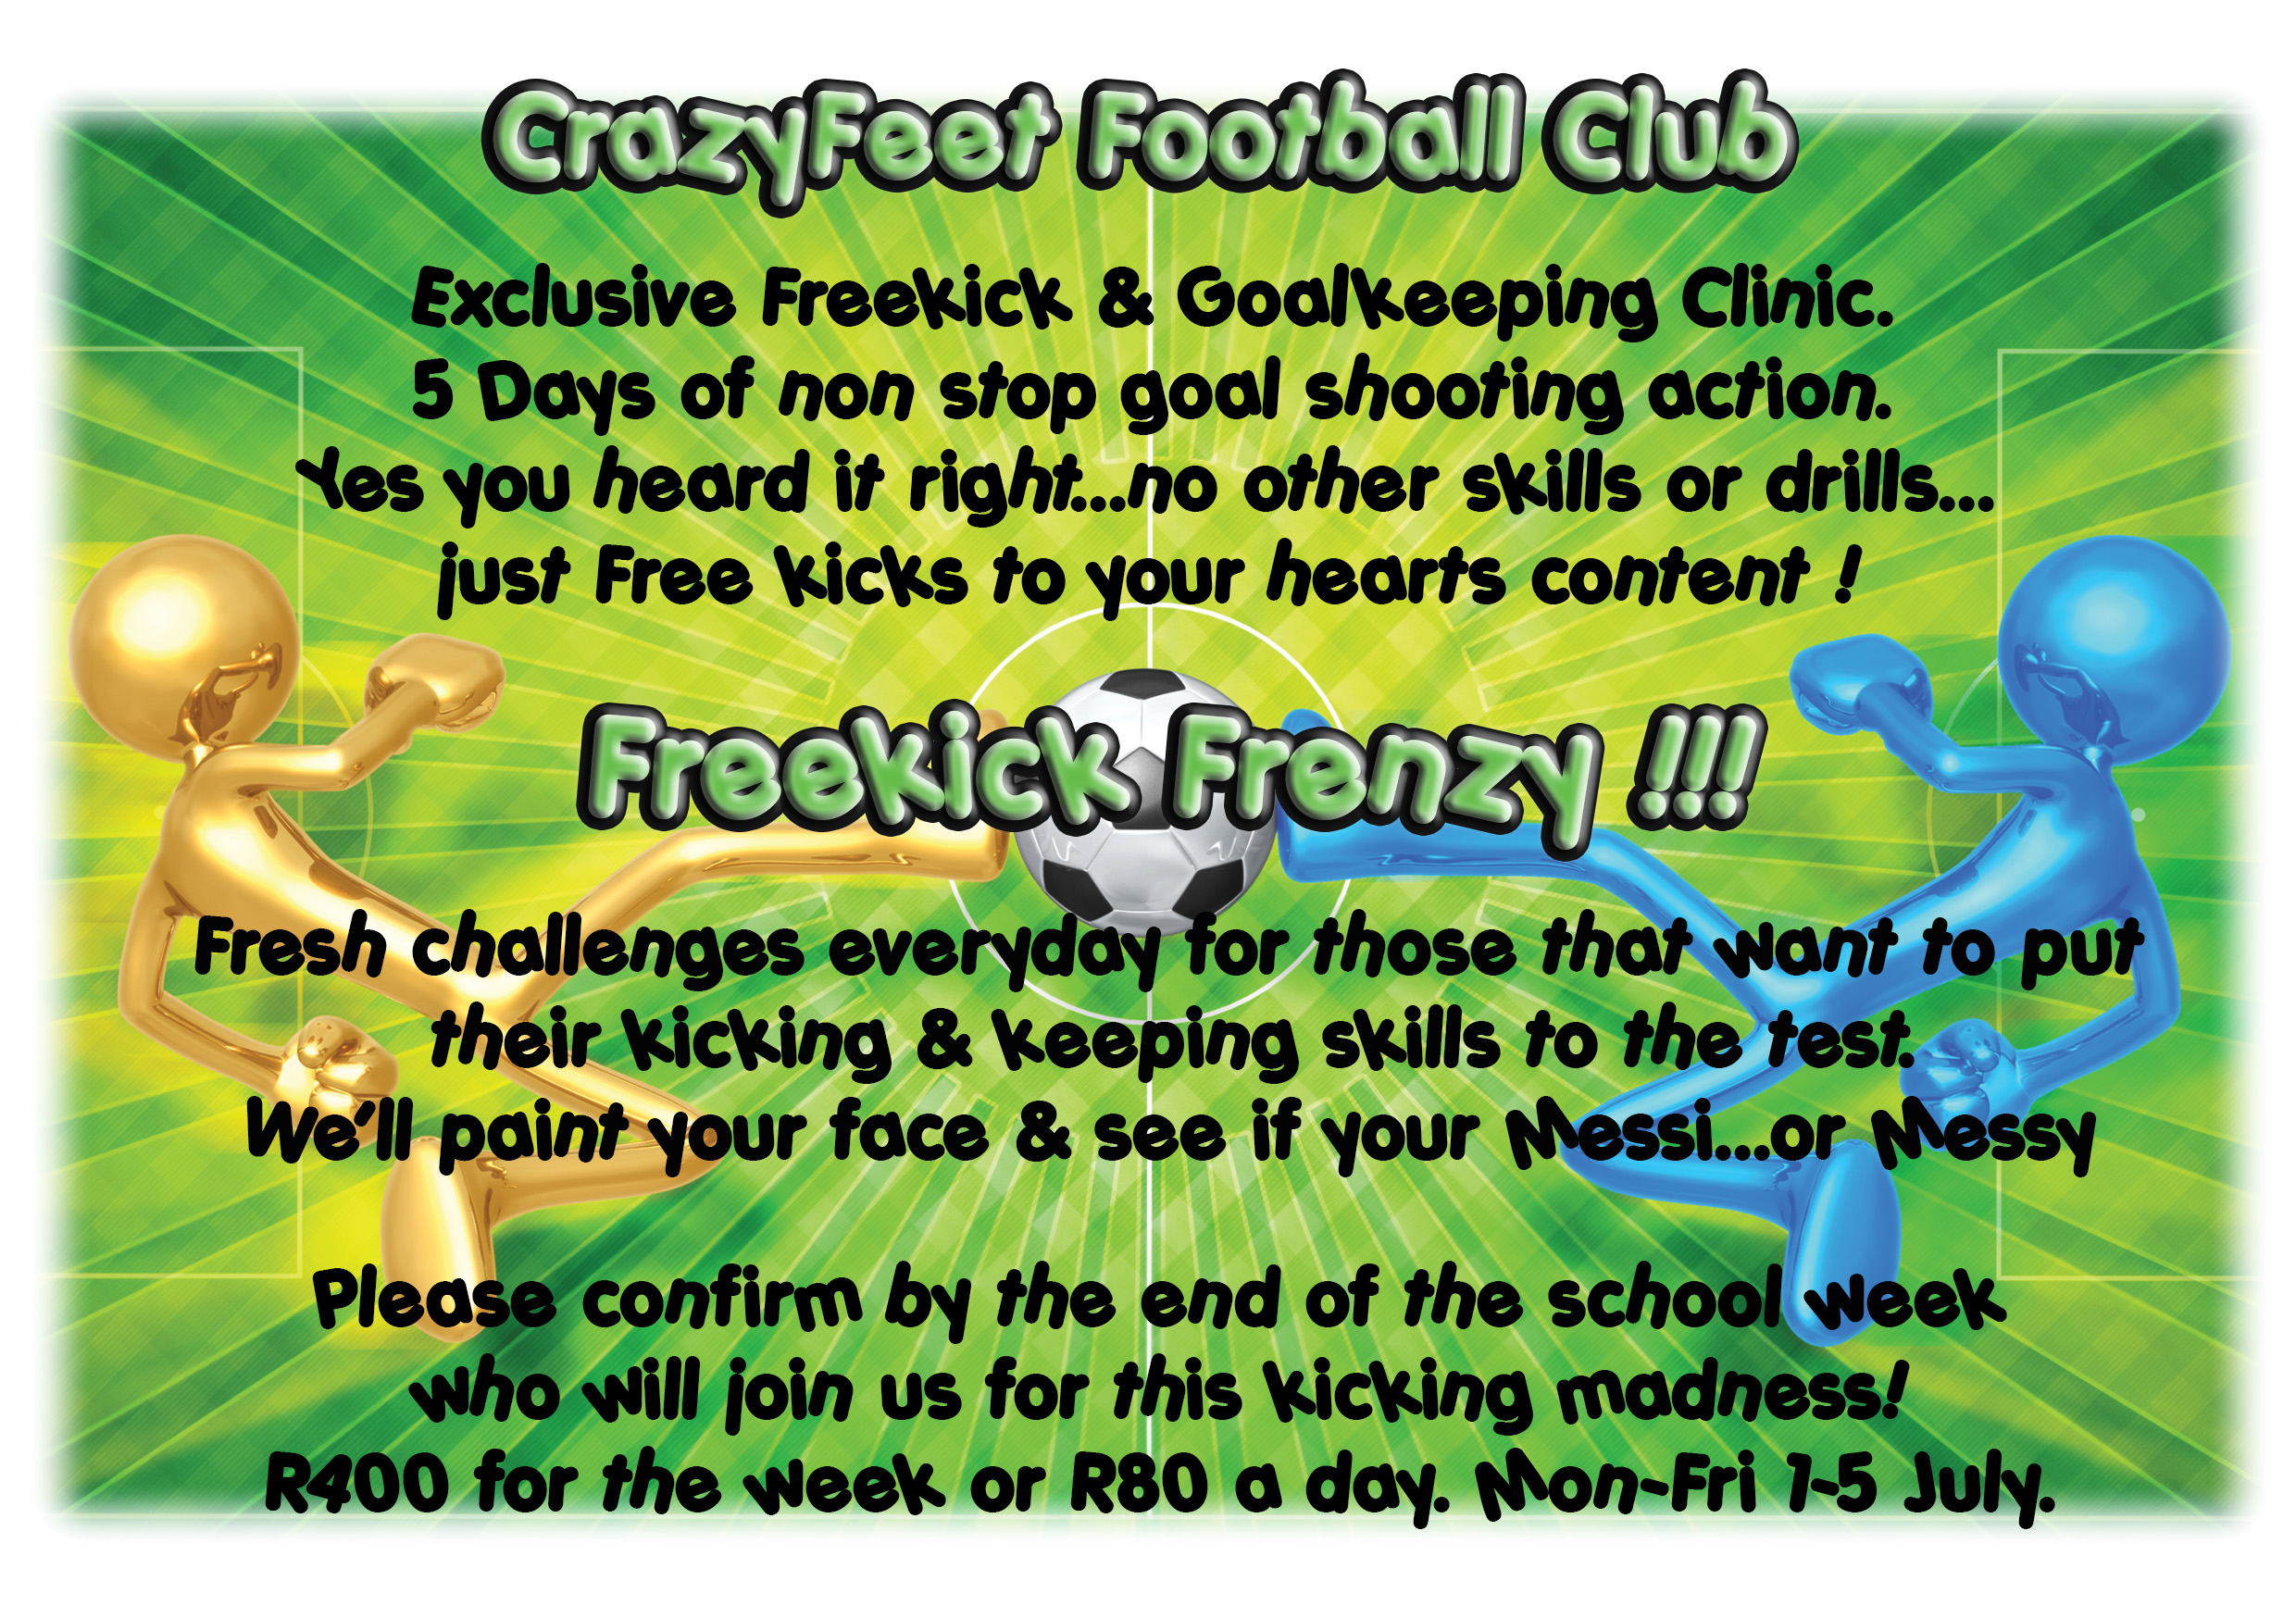 Freekick Clinic